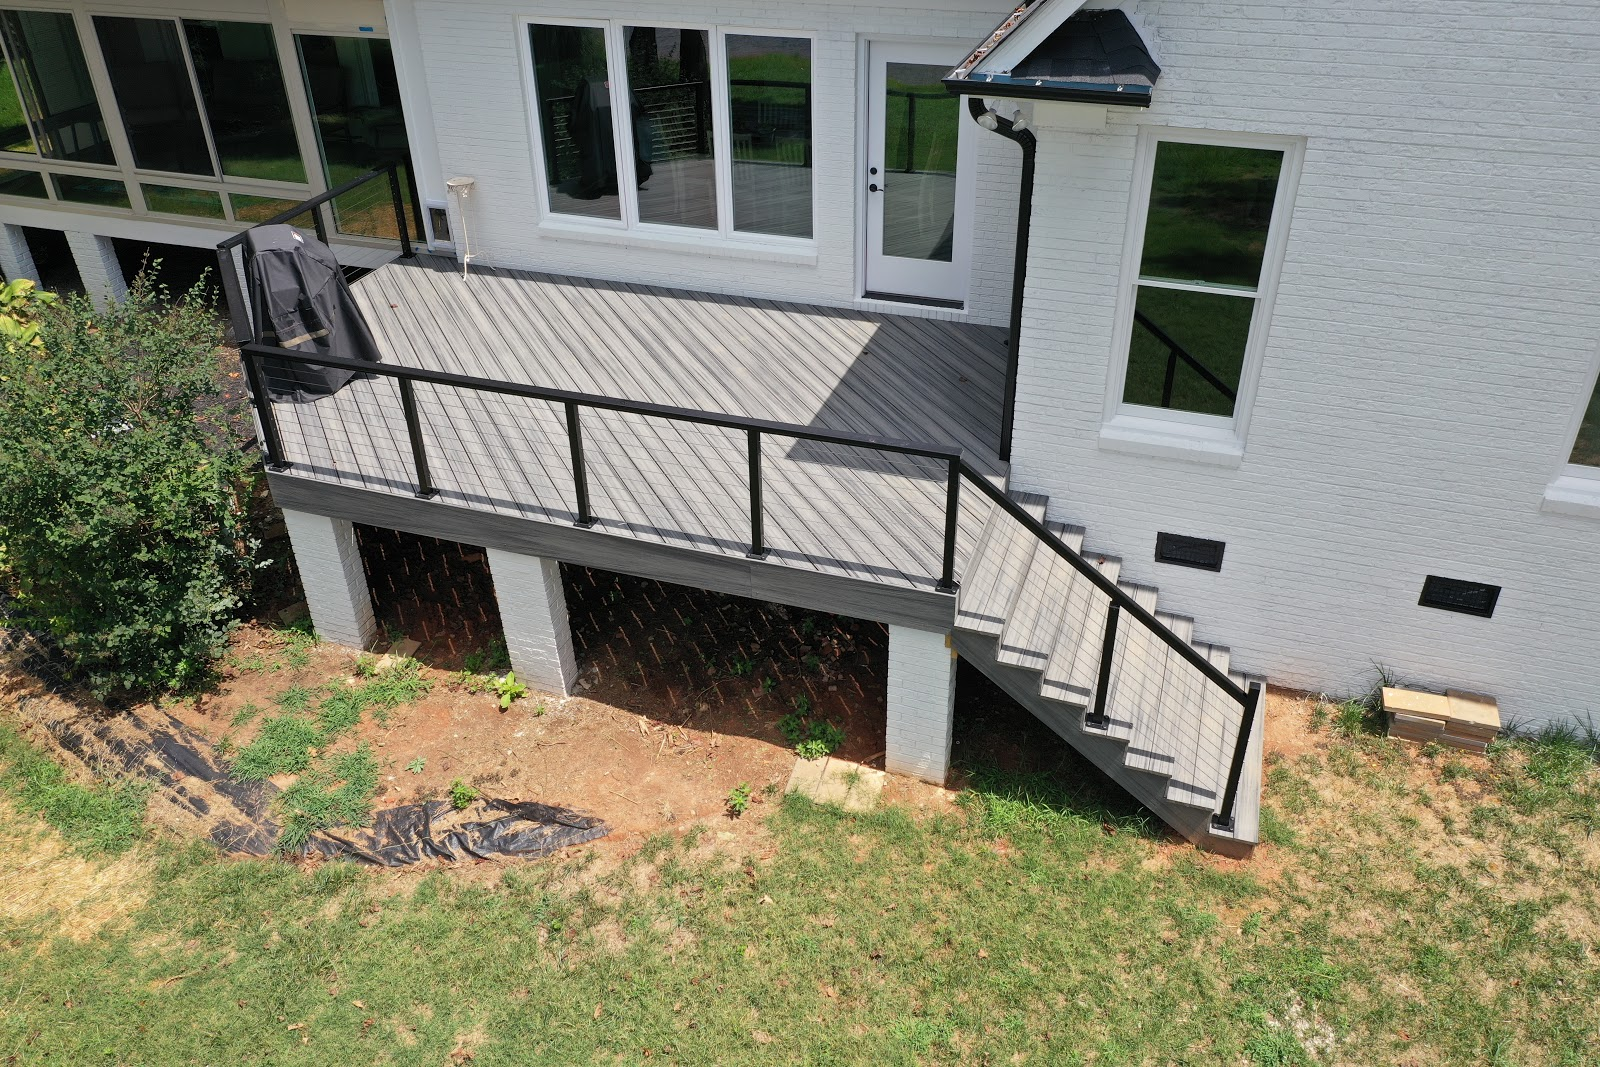 exterior overview of outdoor concrete and metal deck